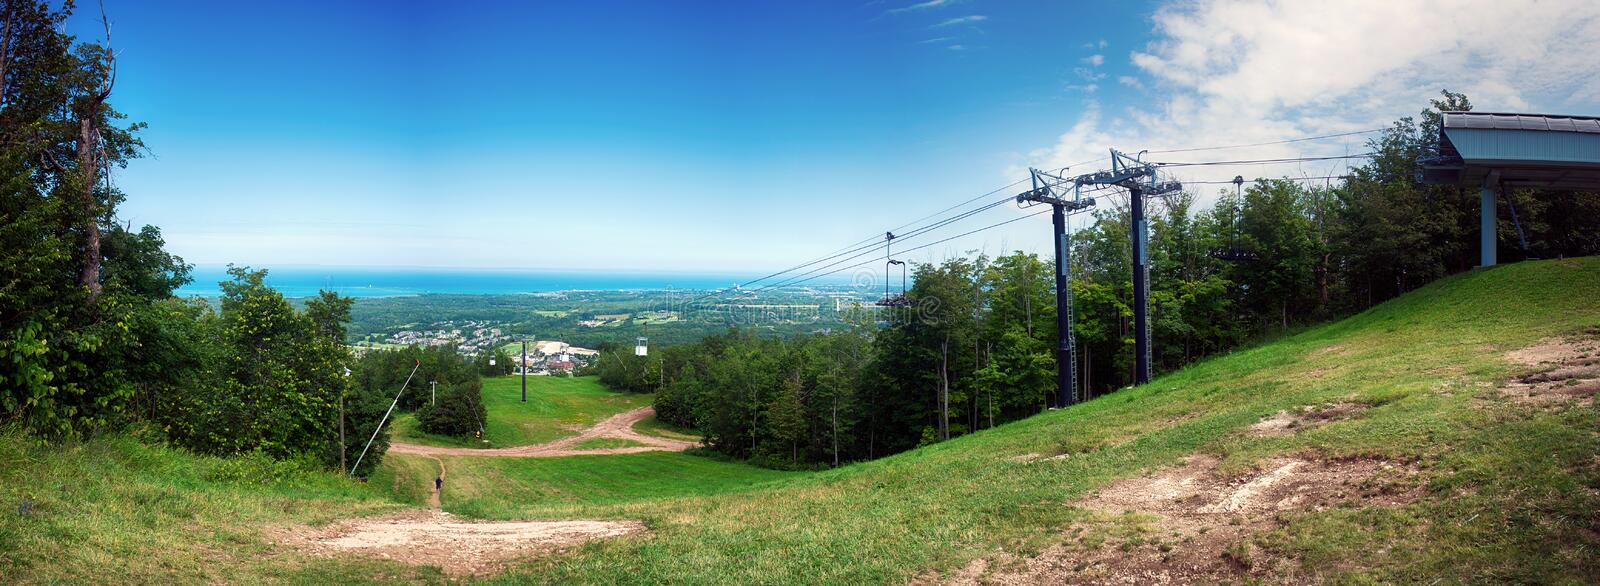 Paroramic view above Blue Mountain Ski Resort with a chairlift i. Paroramic view of summer landscape above Blue Mountain Ski Resort with a chairlift in stock photography